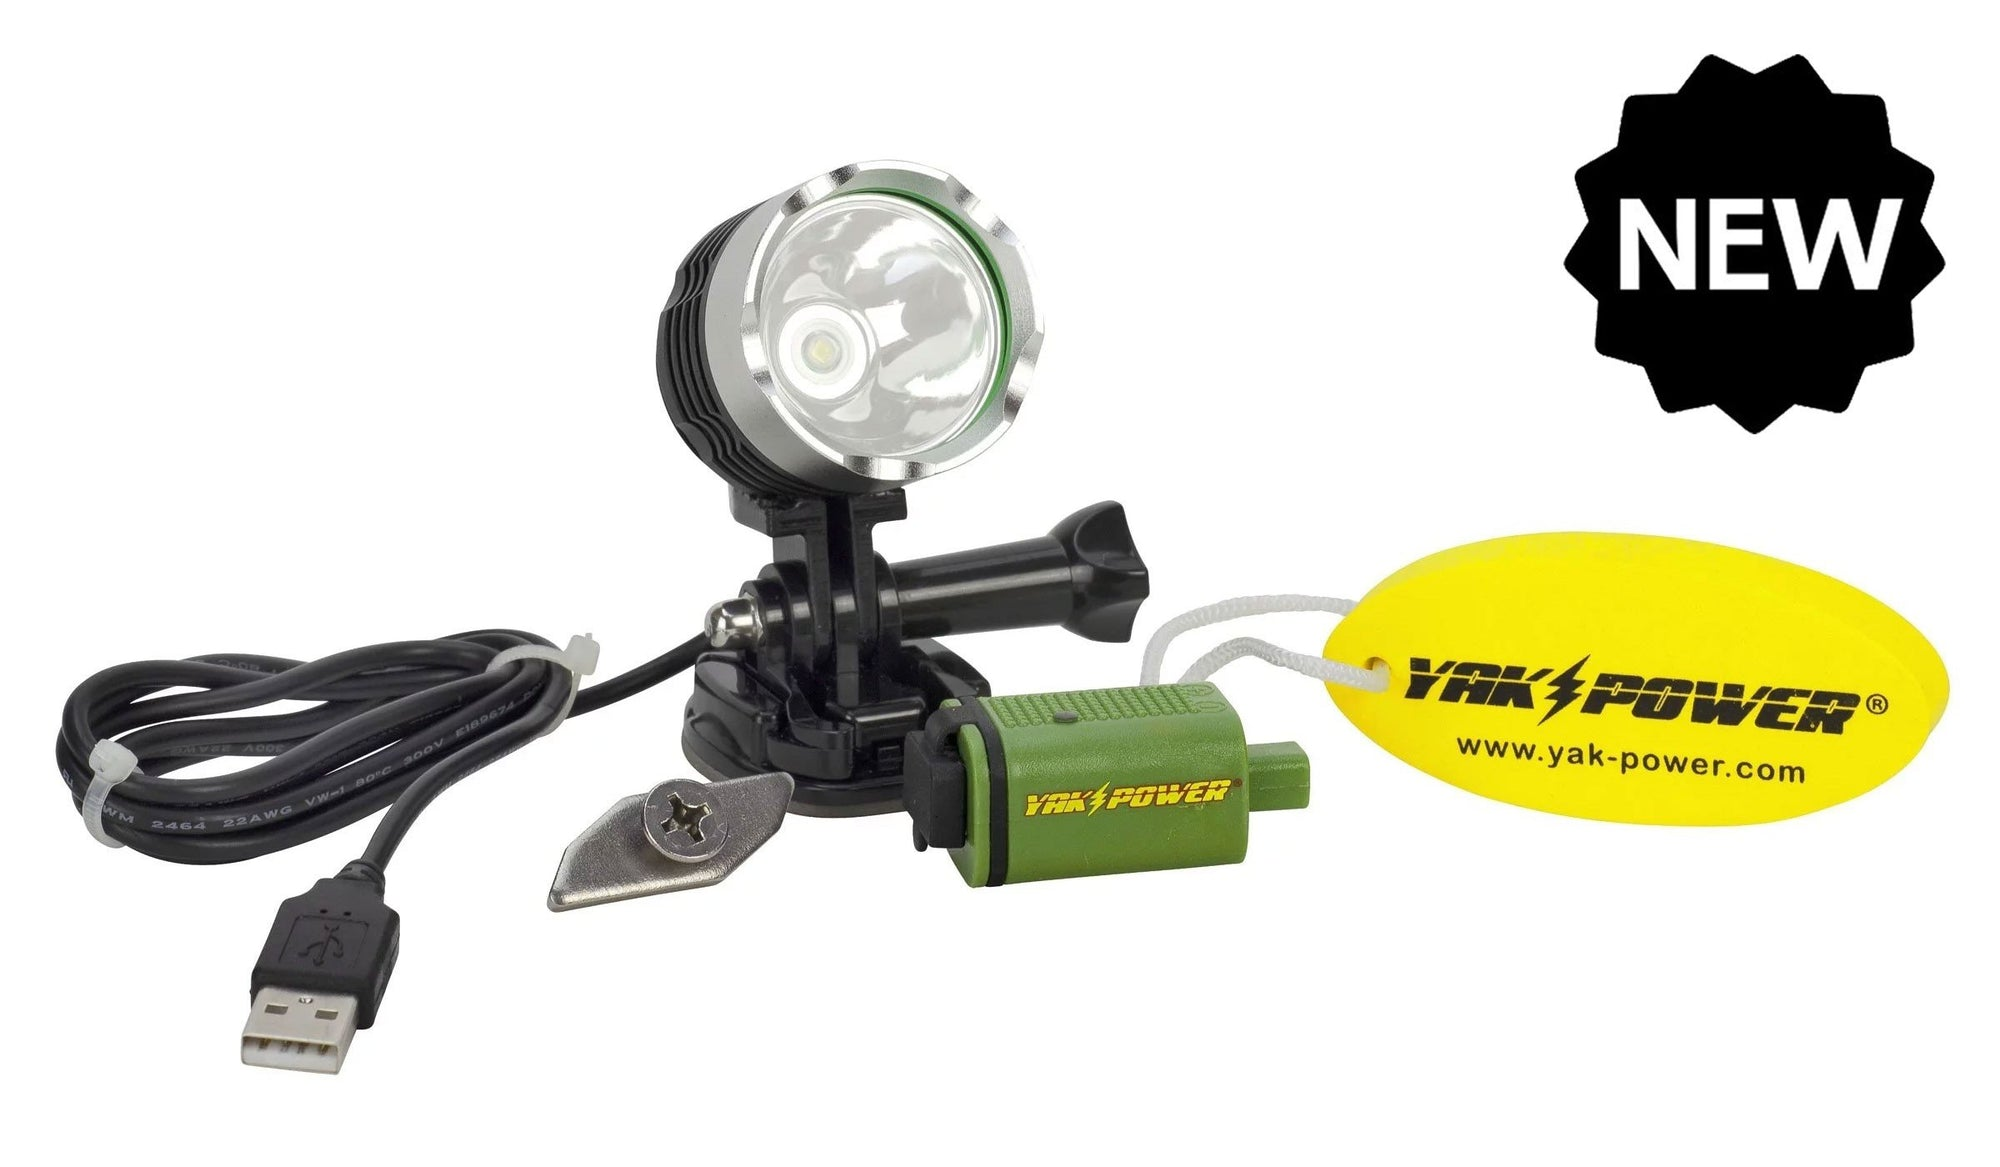 USB Spot & Safety Light - Hoodoo Sports